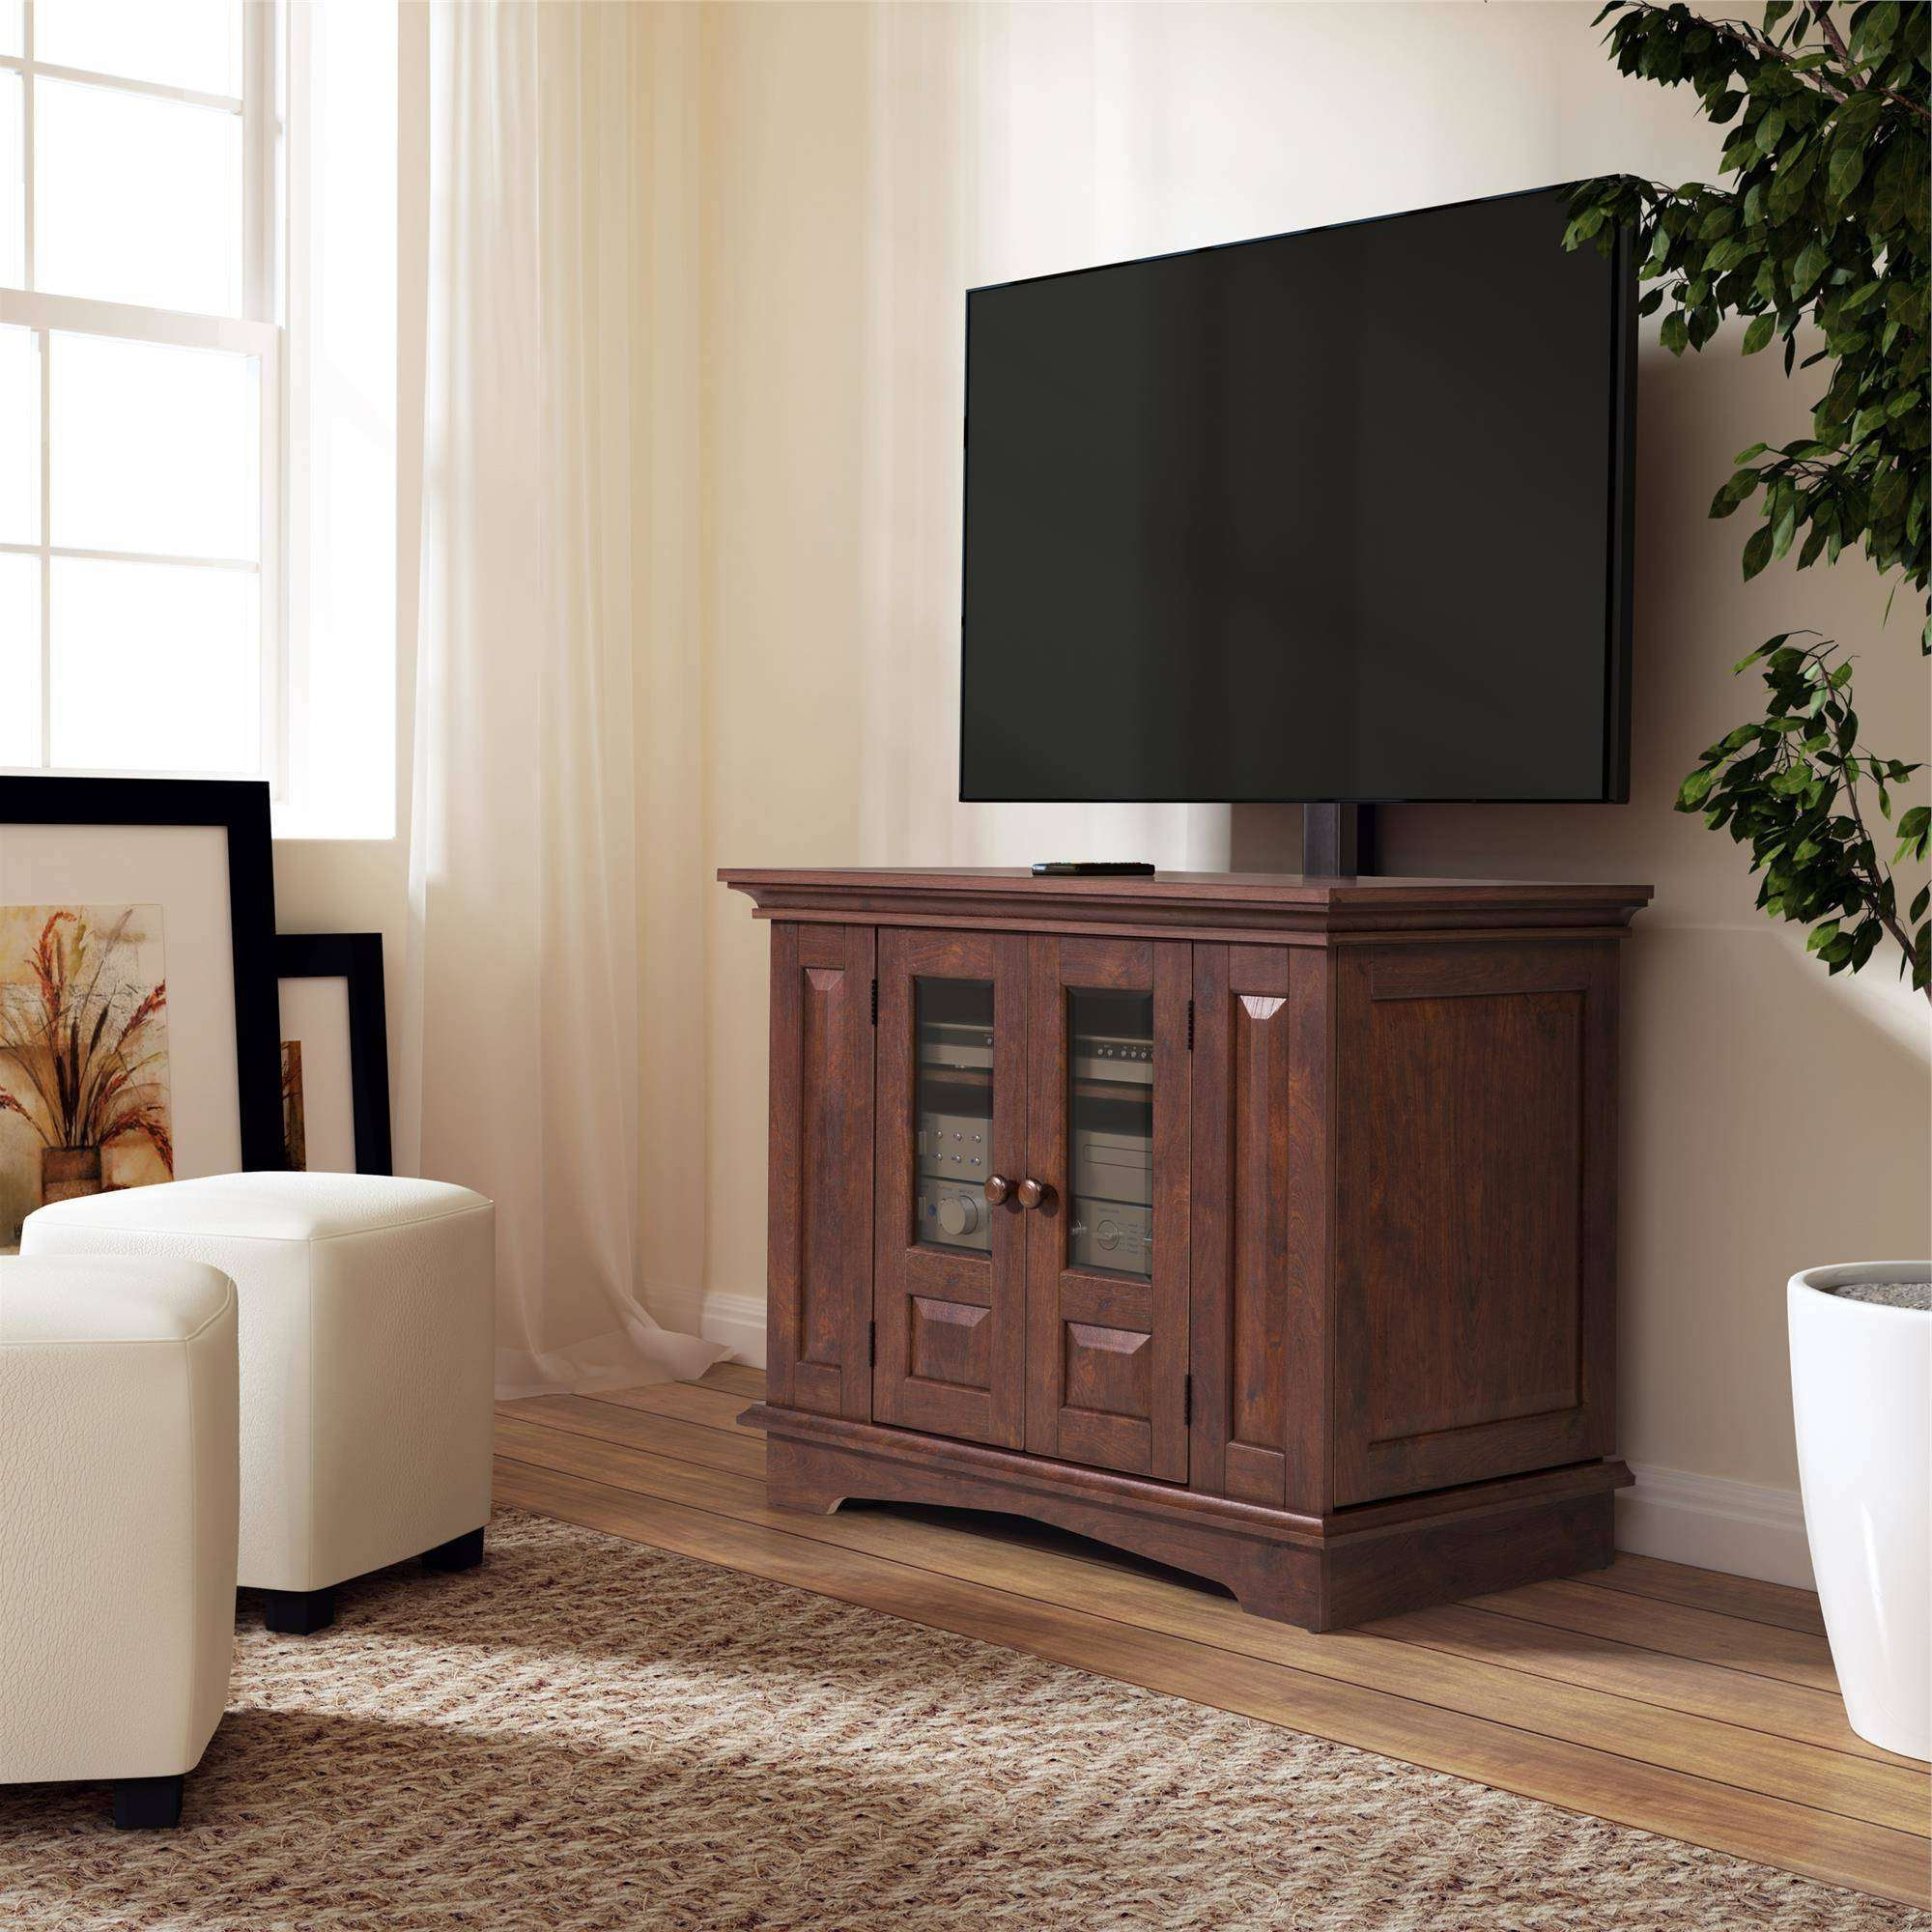 Tv : Amazing Cherry Wood Tv Cabinets Better Homes And Gardens Inside Cherry Wood Tv Cabinets (View 13 of 20)